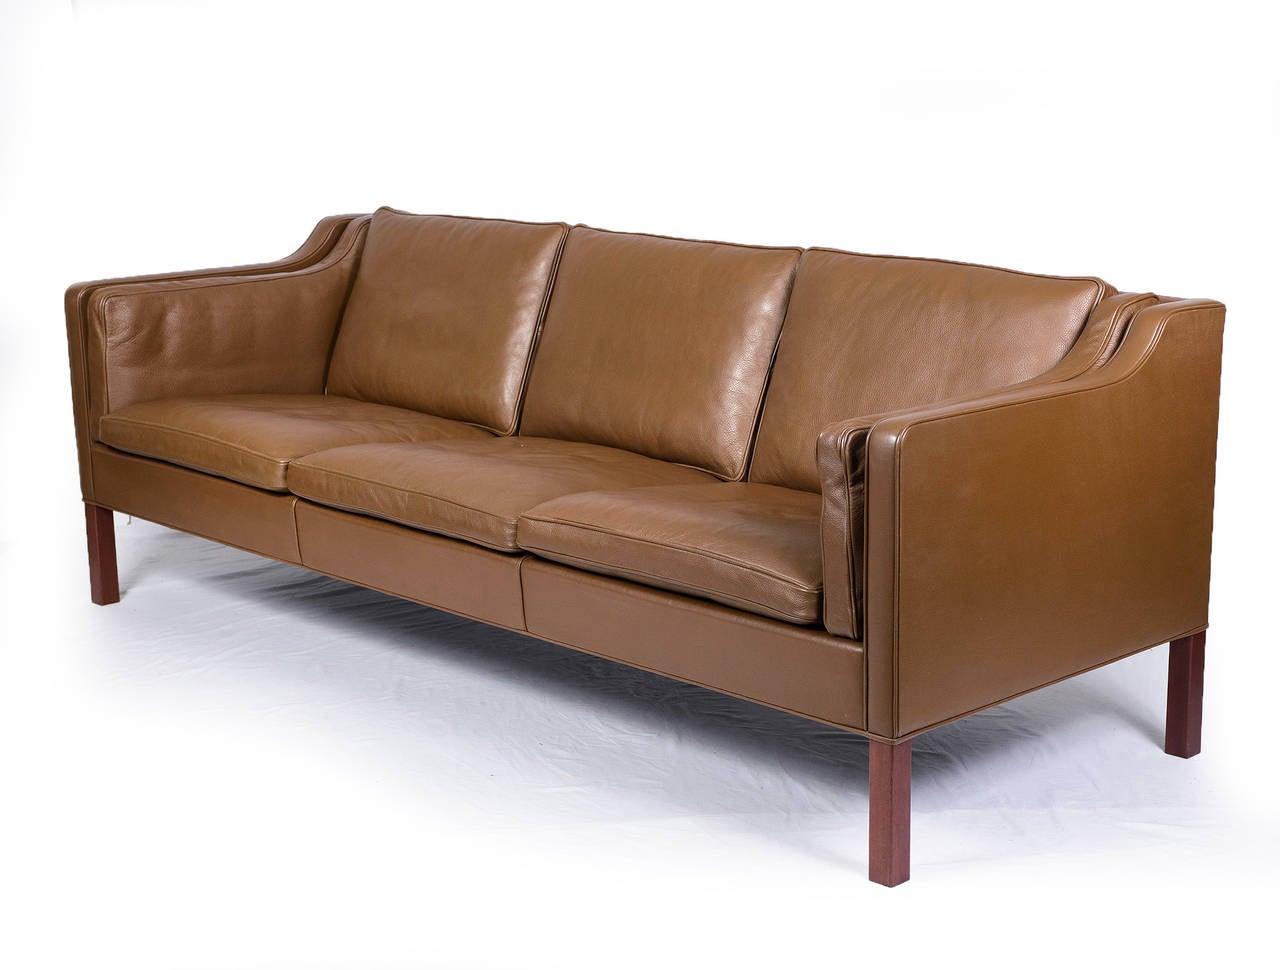 borge mogensen sofa model 2209 what leather is best for sofas 2213 three seat at 1stdibs